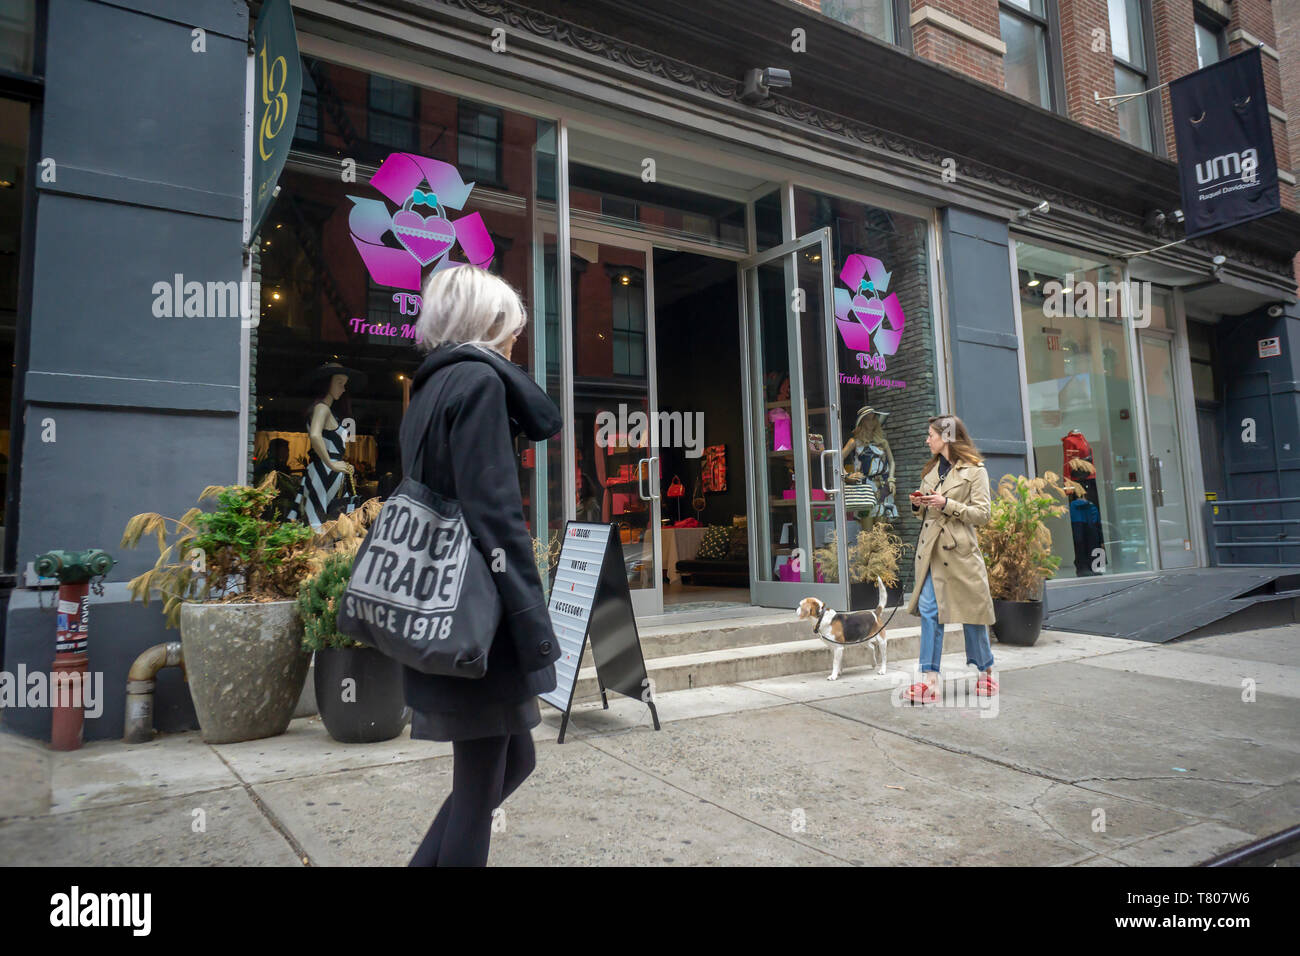 A pop-up location for the online handbag merchant Trade My Bag, located in the Soho neighborhood of New York on Friday, May 3, 2019. The pop-up offers authentication, appraisal, and purchase of your designer bags as well as having a selection of luxury bags for sale. (© Richard B. Levine) - Stock Image